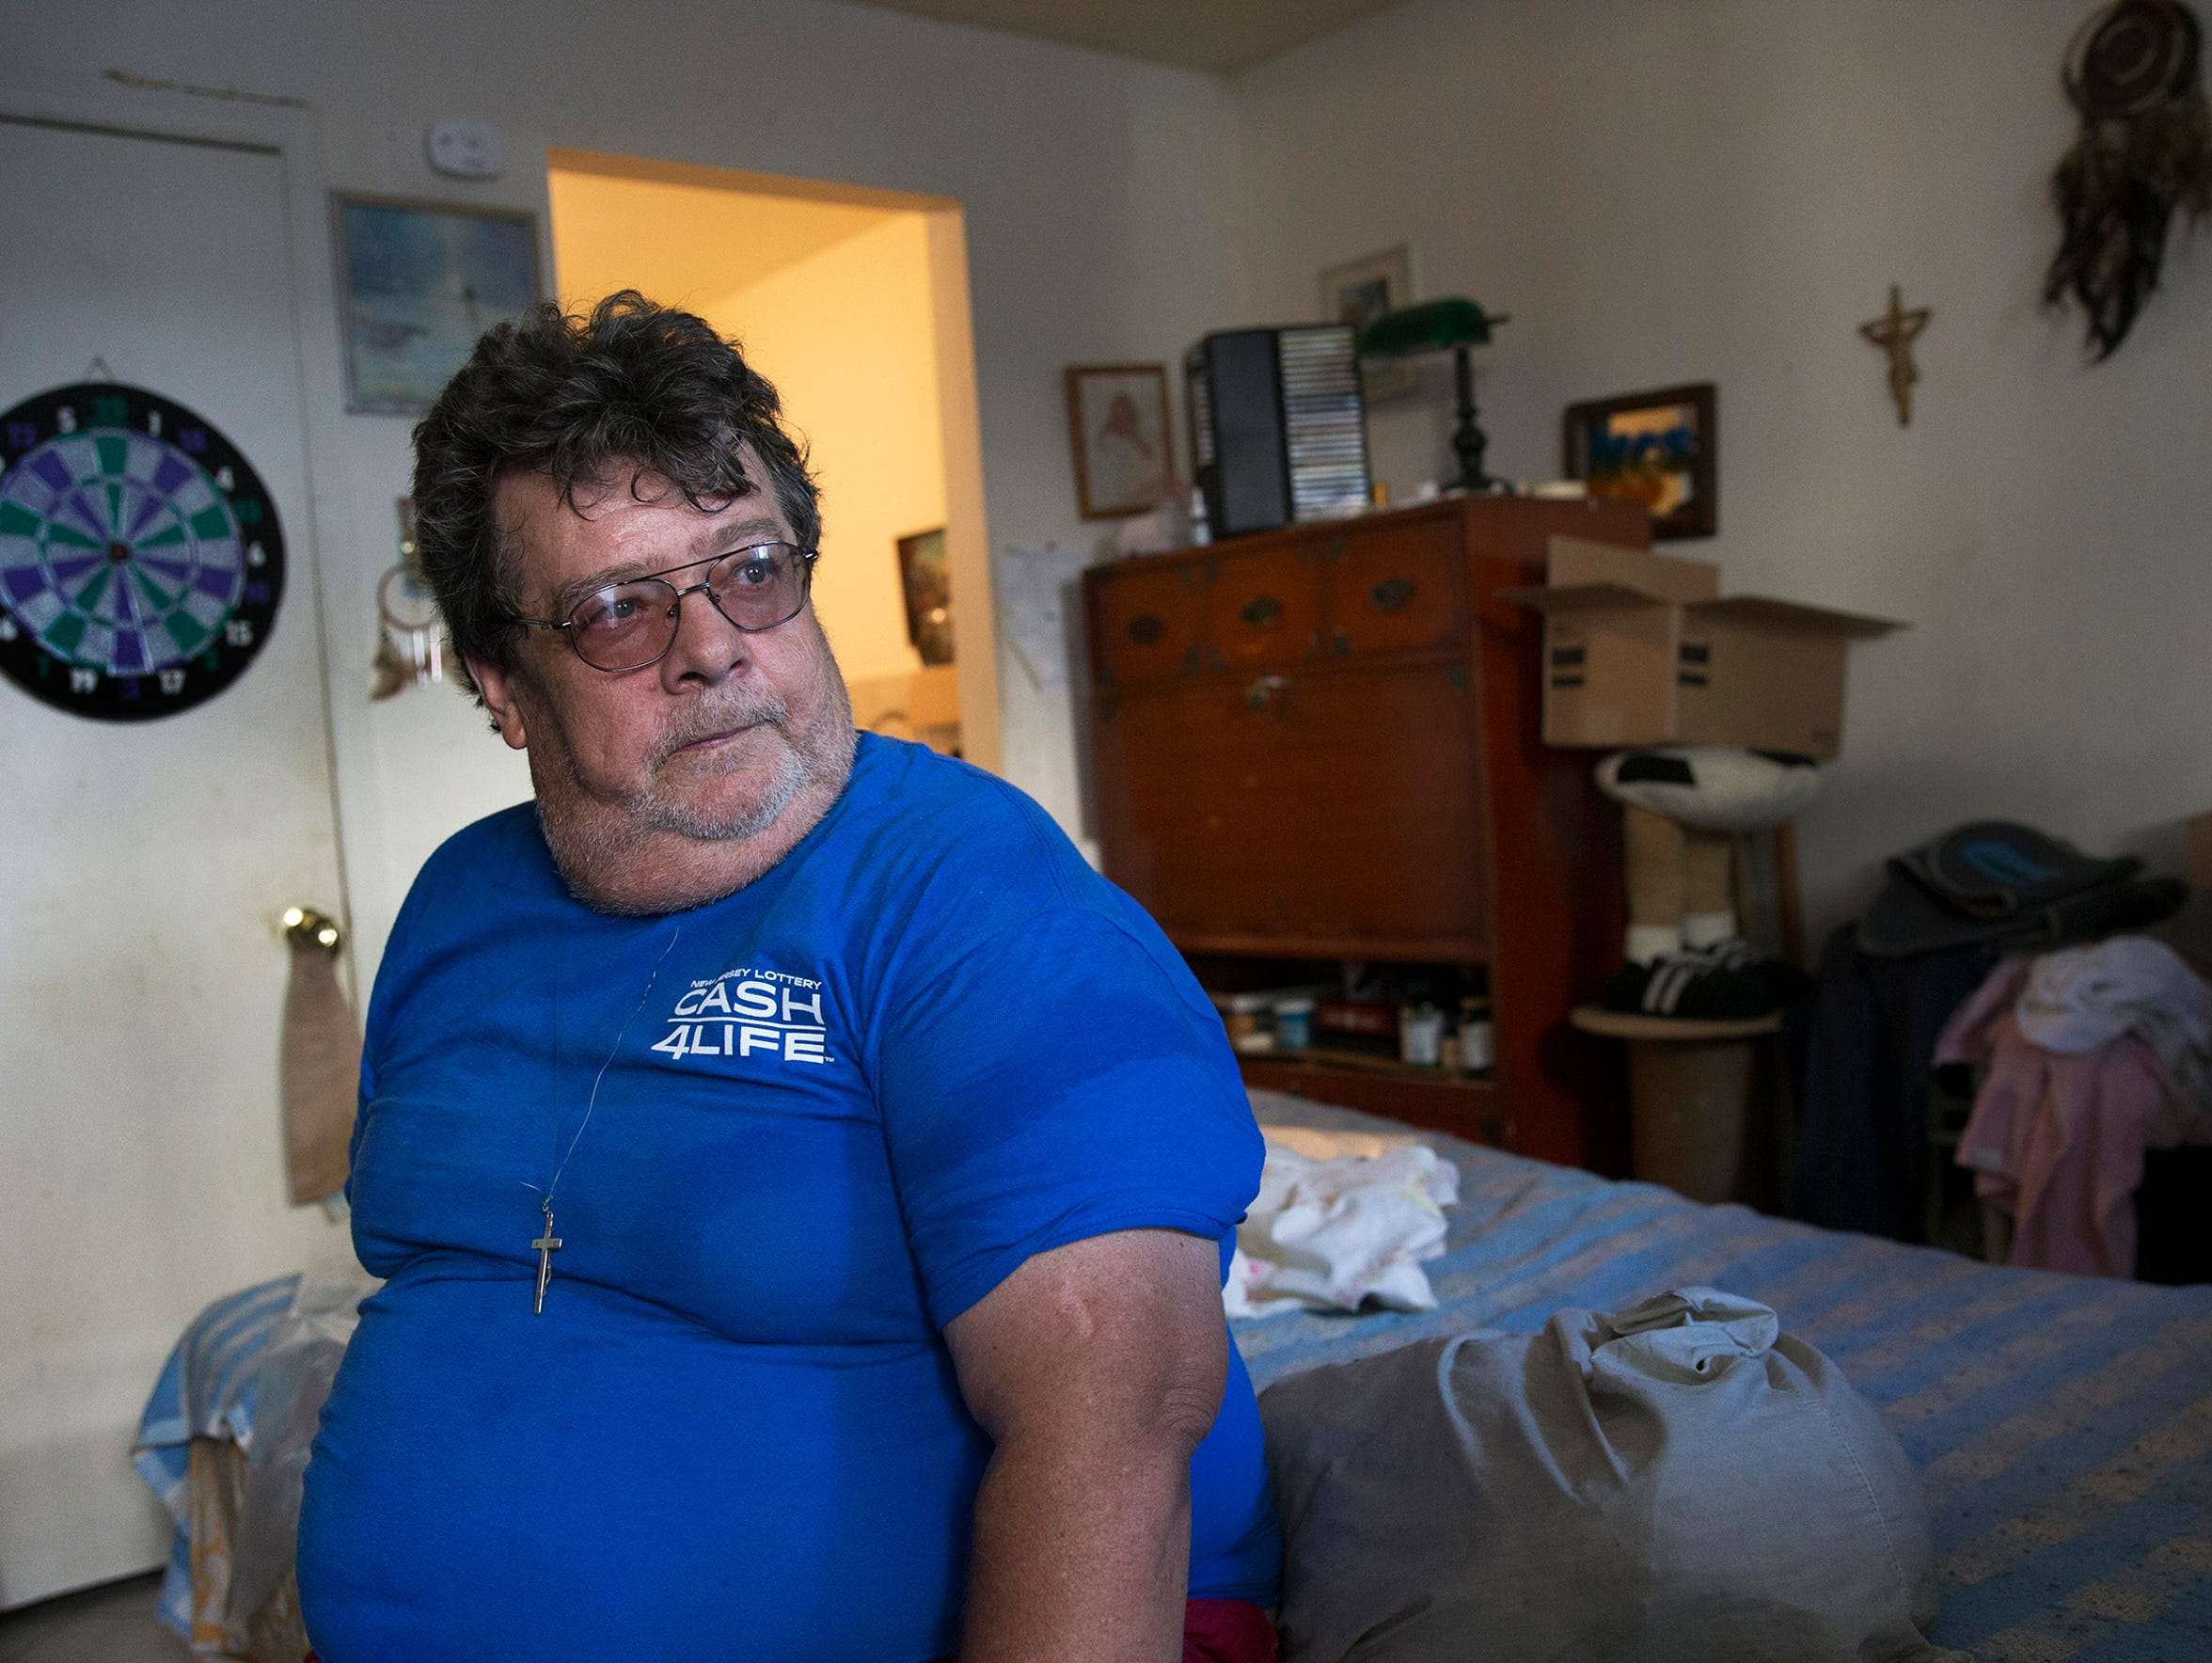 Tenant Bruce Meicke said poor conditions in his apartment